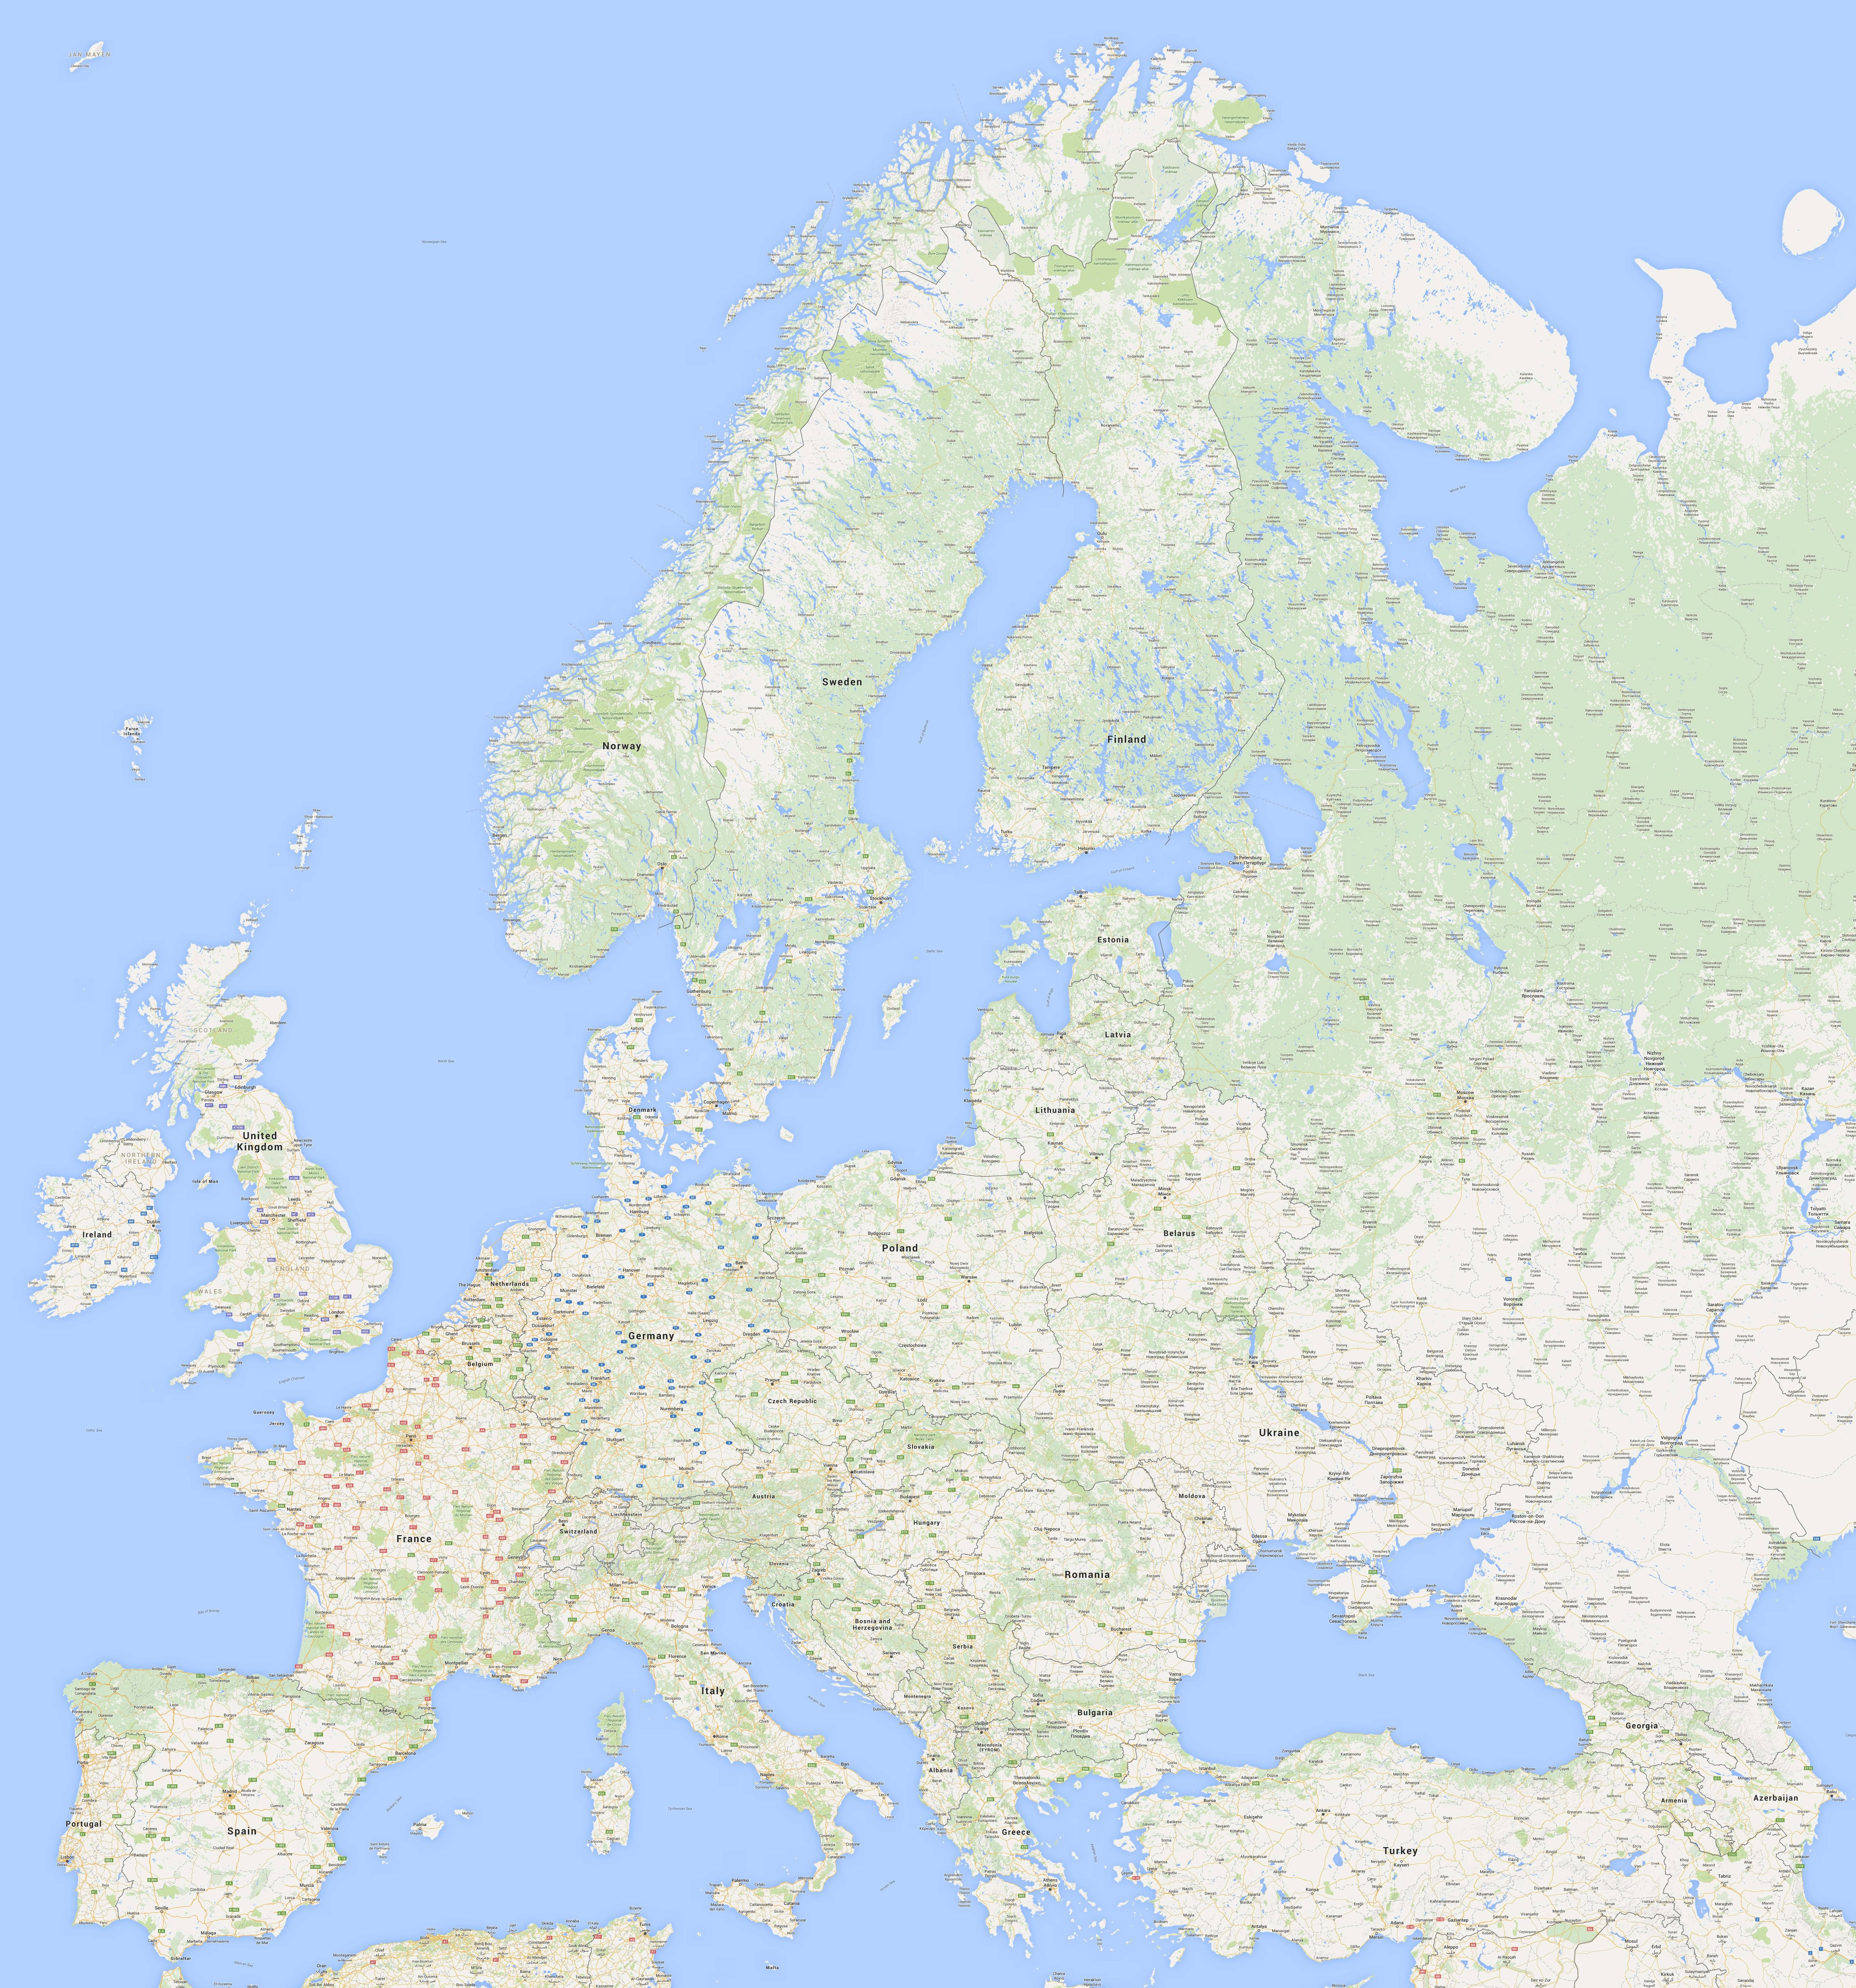 I made a high resolution map of Europe becuase i couldn t find one